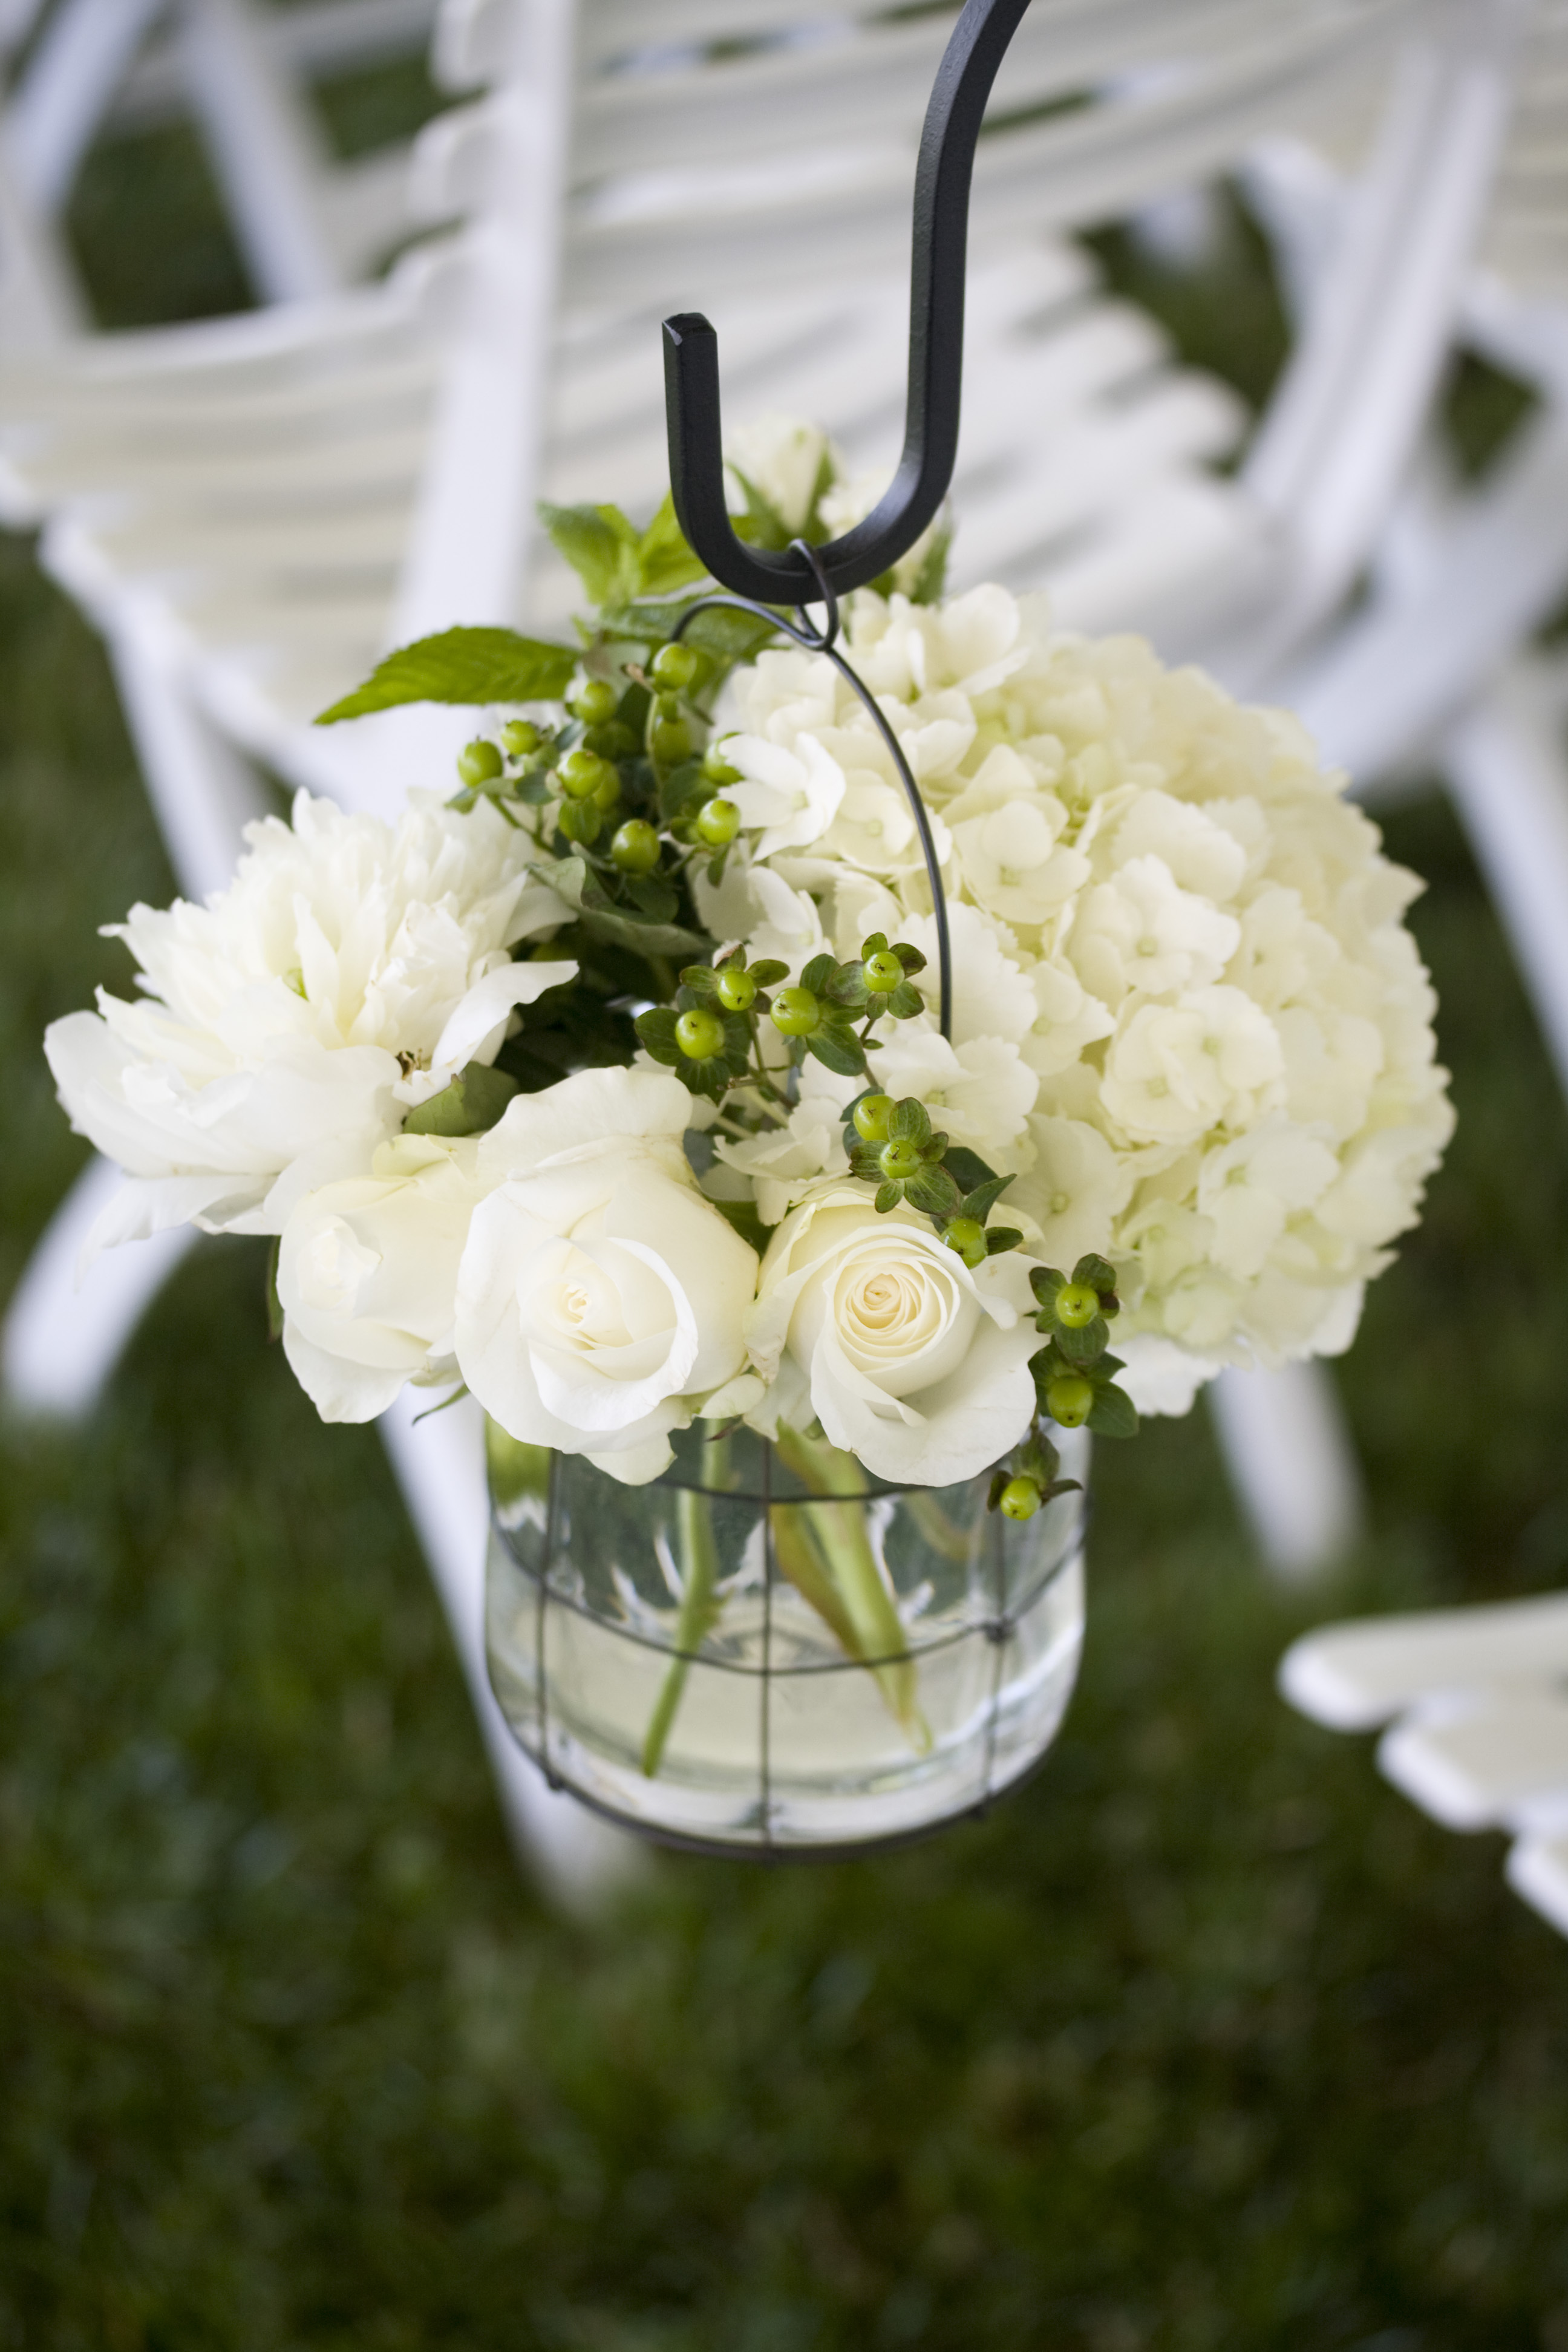 Flowers & Decor, white, green, Ceremony Flowers, Aisle Decor, Classic Wedding Flowers & Decor, Summer Wedding Flowers & Decor